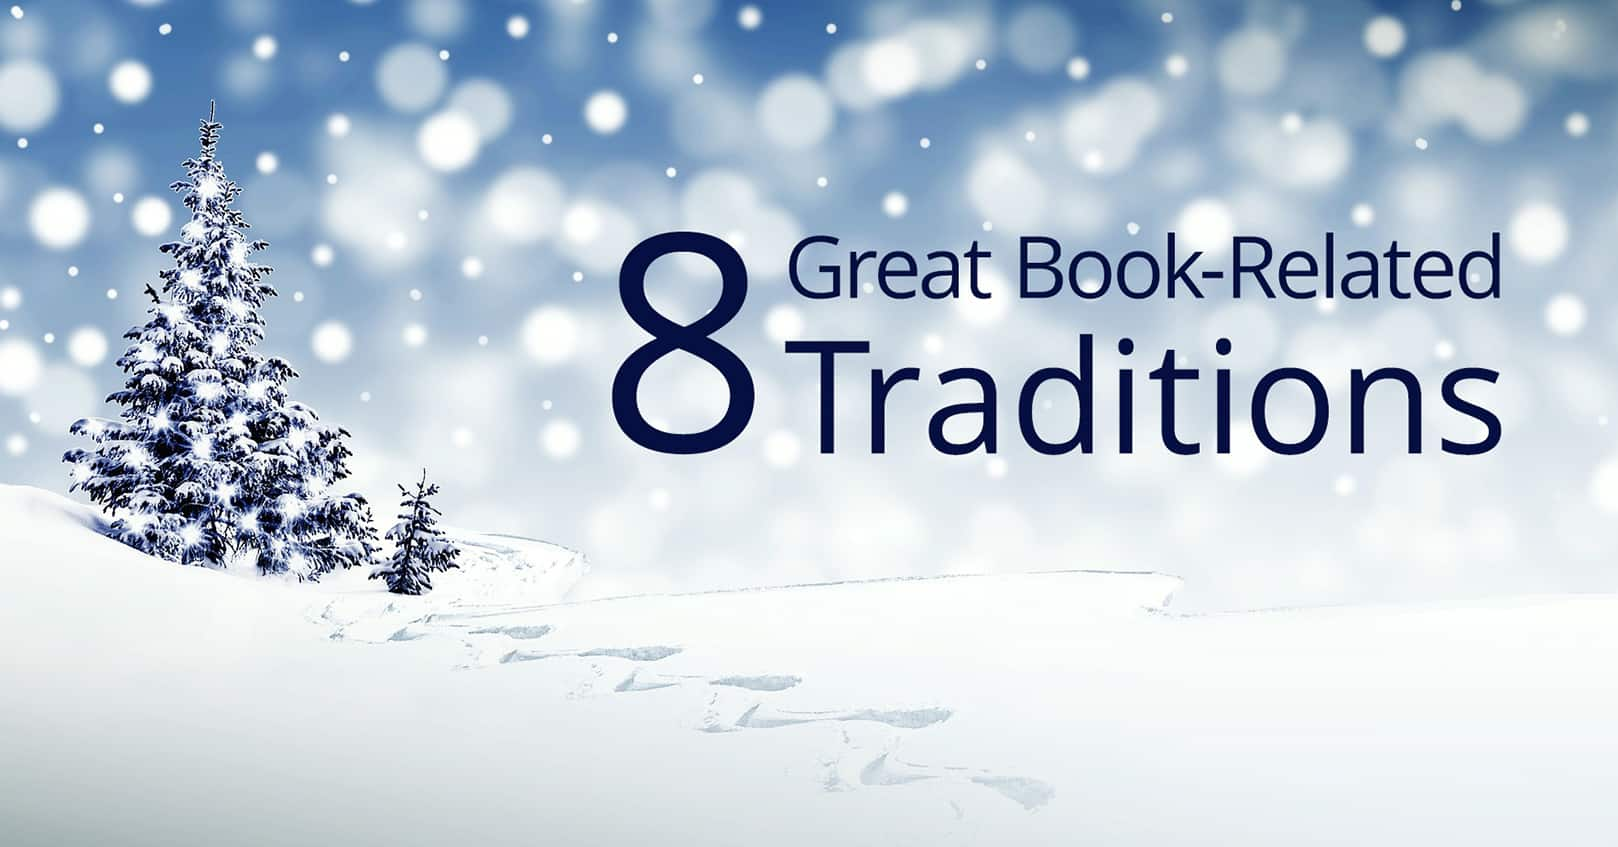 great book-related traditions